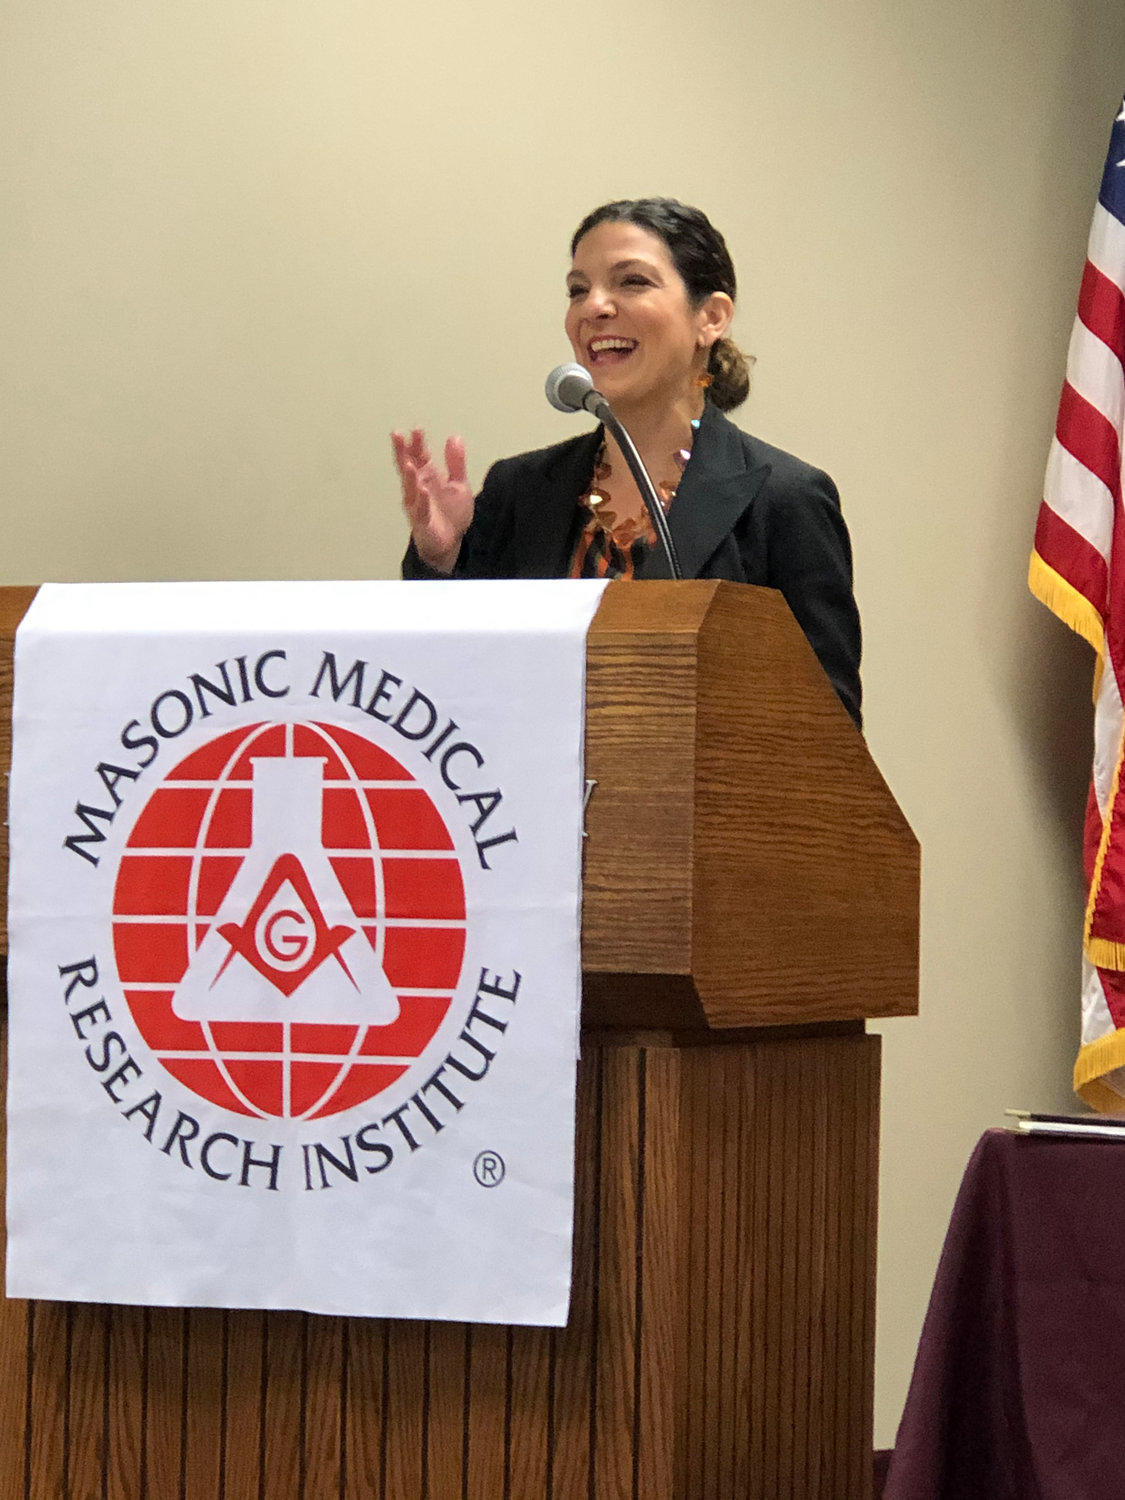 EXCITED— Gordon K. Moore Professor and Chair of Biomedical Research and Translational Medicine Maria Kontaridis Ph.D welcomes all to the announcement of MMRI's partnership with four other local organizations for research directed at autism spectrum disorder on Thursday, Oct 17. at the institute's research center in Utica.